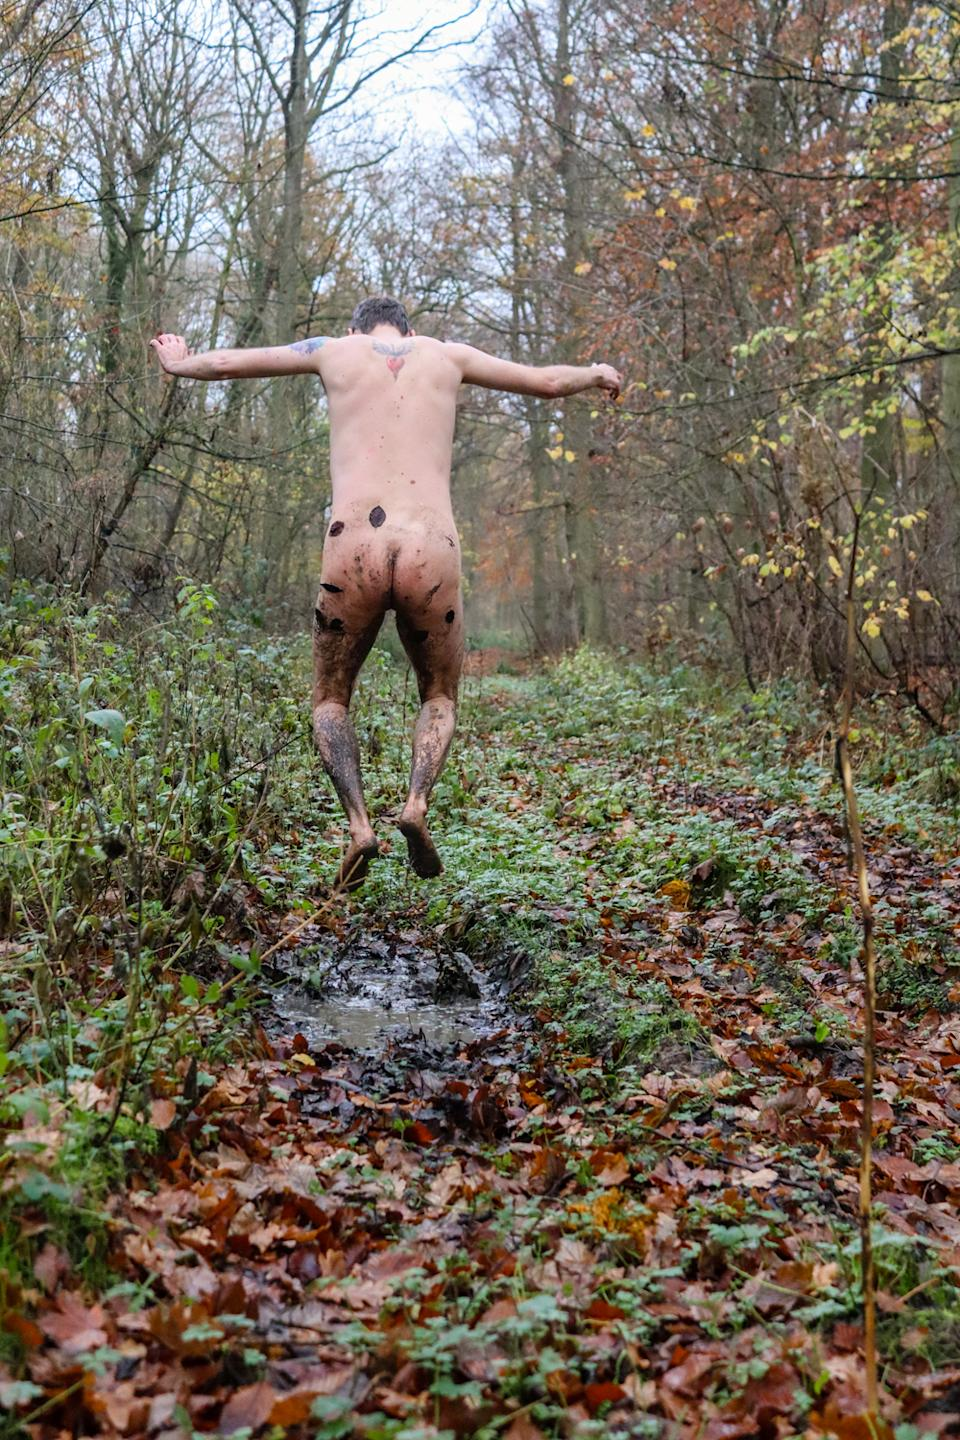 Getting naked while on a walk in the woods helped Chris Hood handle his pandemic anxiety. (PA Real Life)